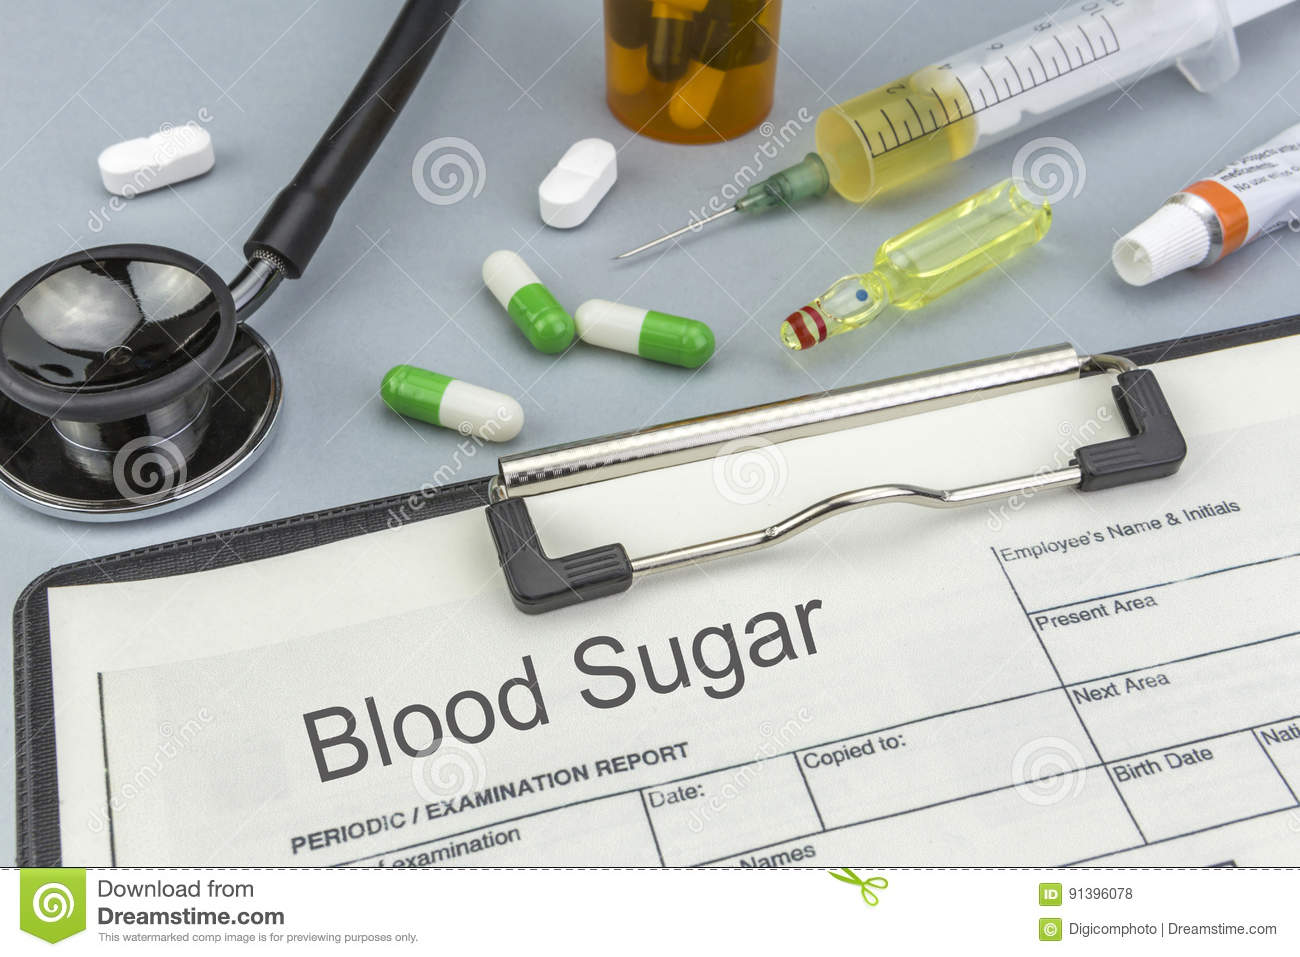 Monitoring Blood Sugar Without the Finger-Stick | RxWiki